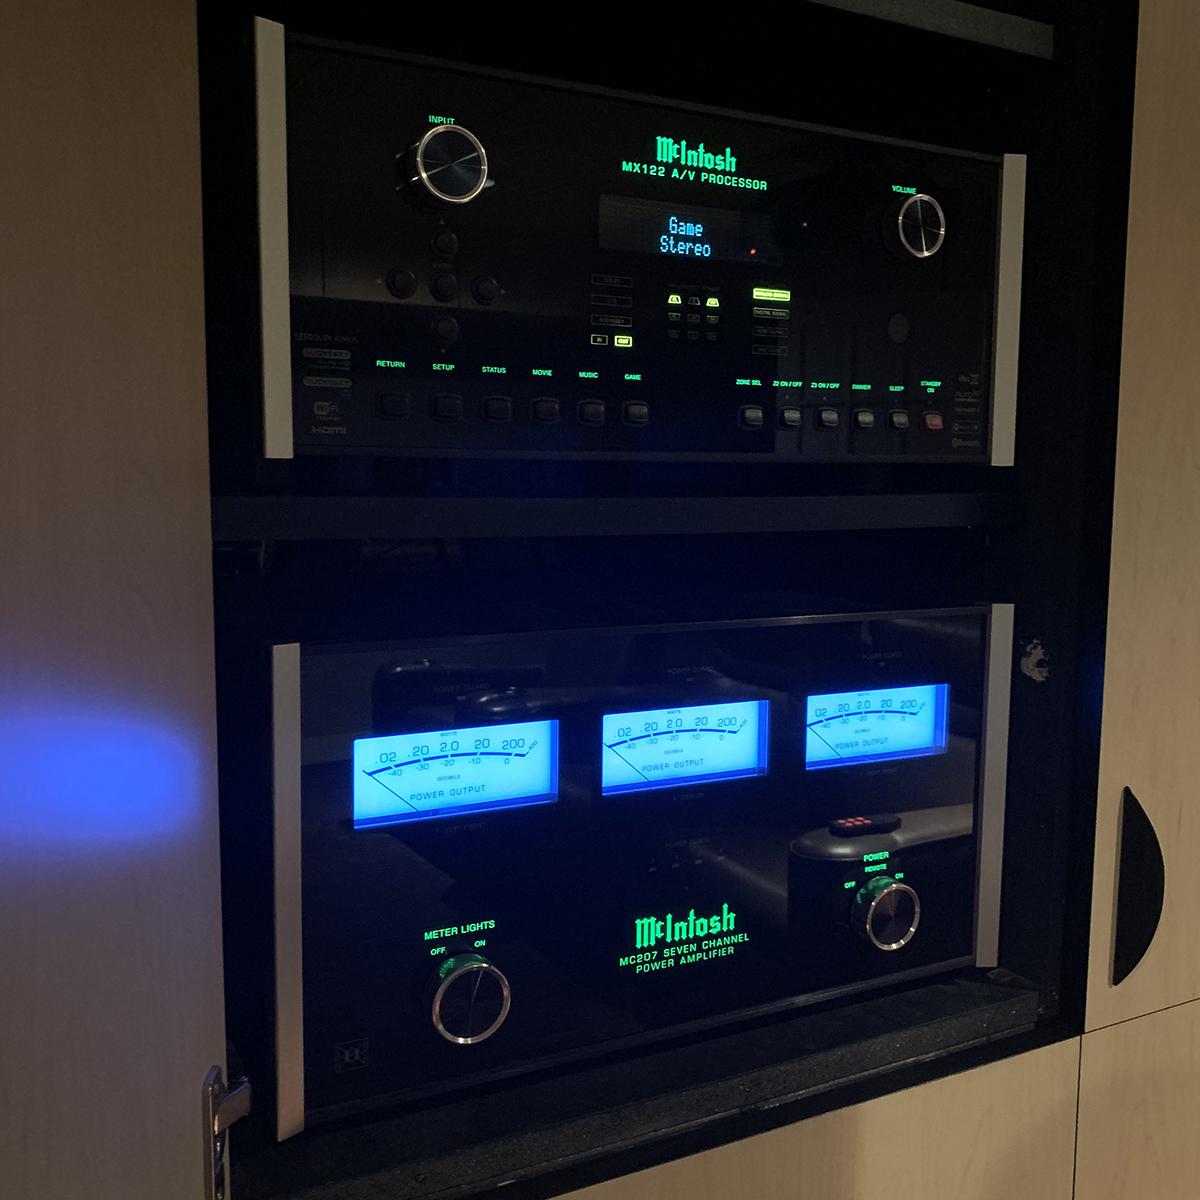 McIntosh Theater Package Deal! McIntosh MX122 AVP & MC207 7-channel amplifier